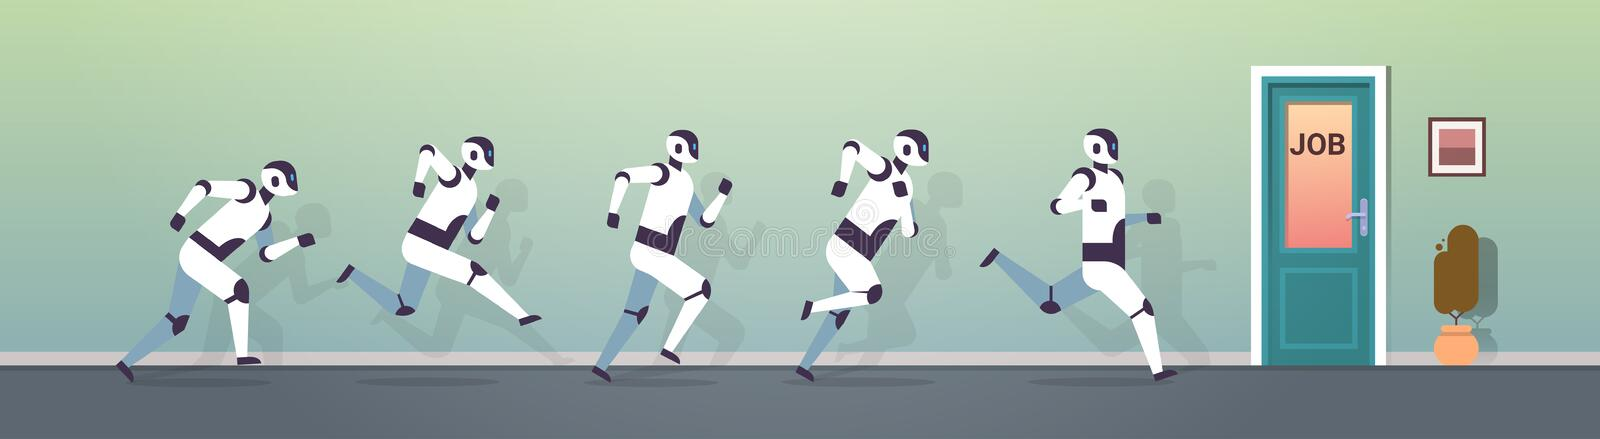 Modern robots group running to job door artificial intelligence technology competition concept flat horizontal vector illustration